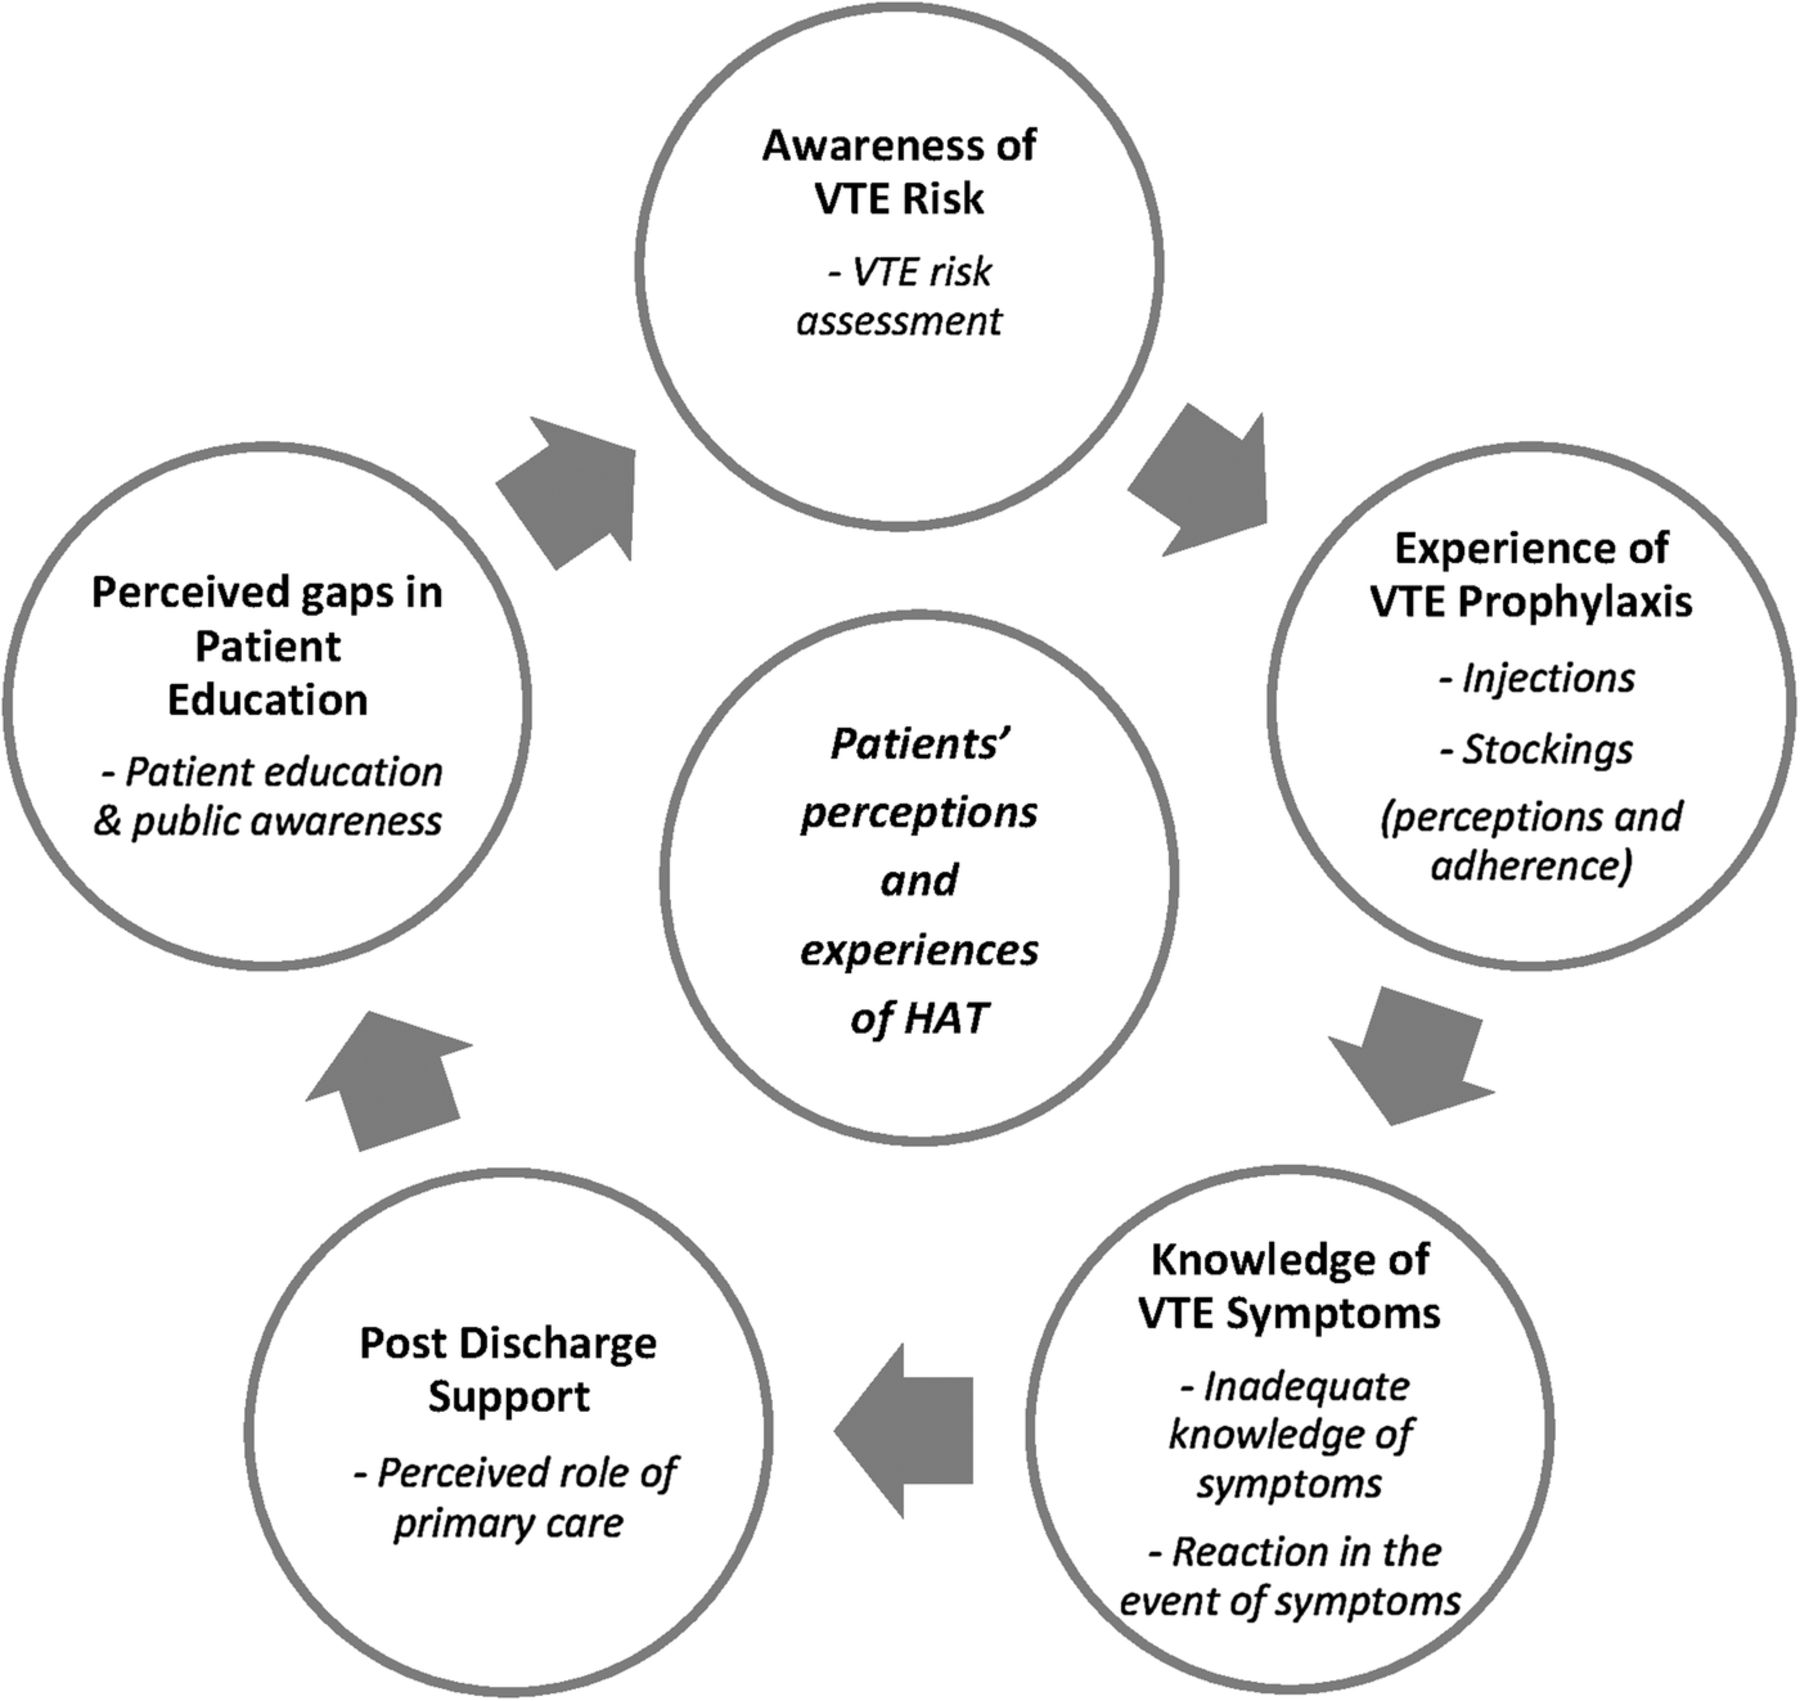 Patients' perceptions and experiences of the prevention of